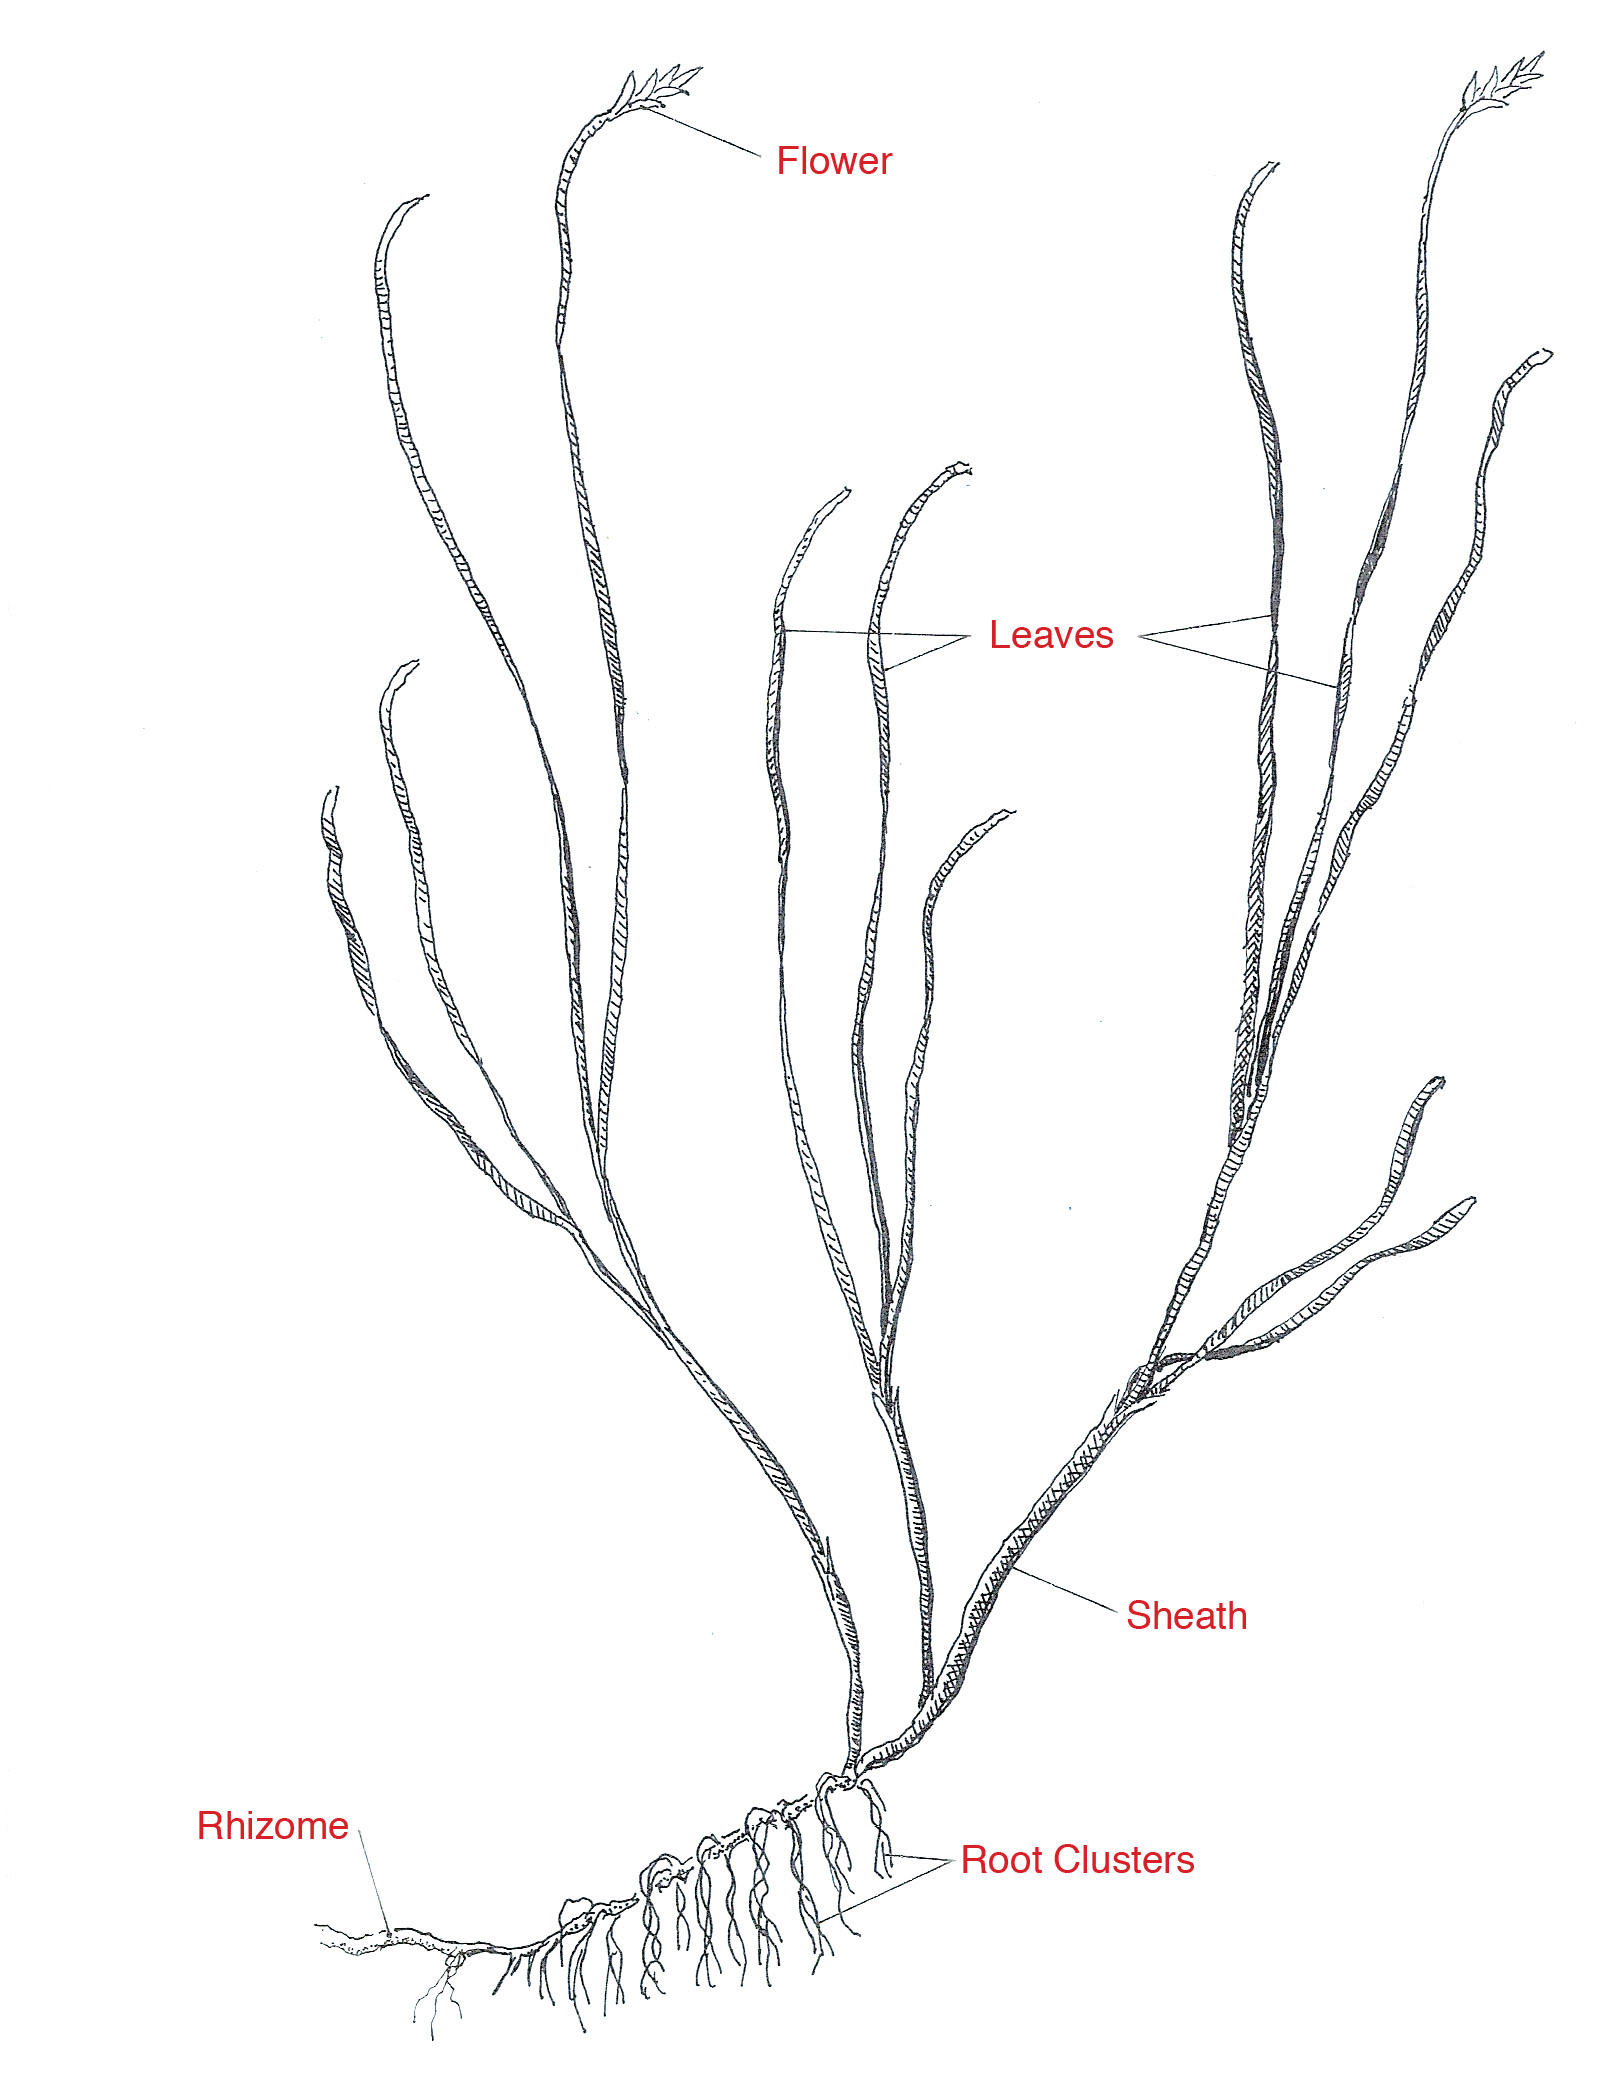 The anatomy of an eelgrass plant. Drawing by Dana Gaines.